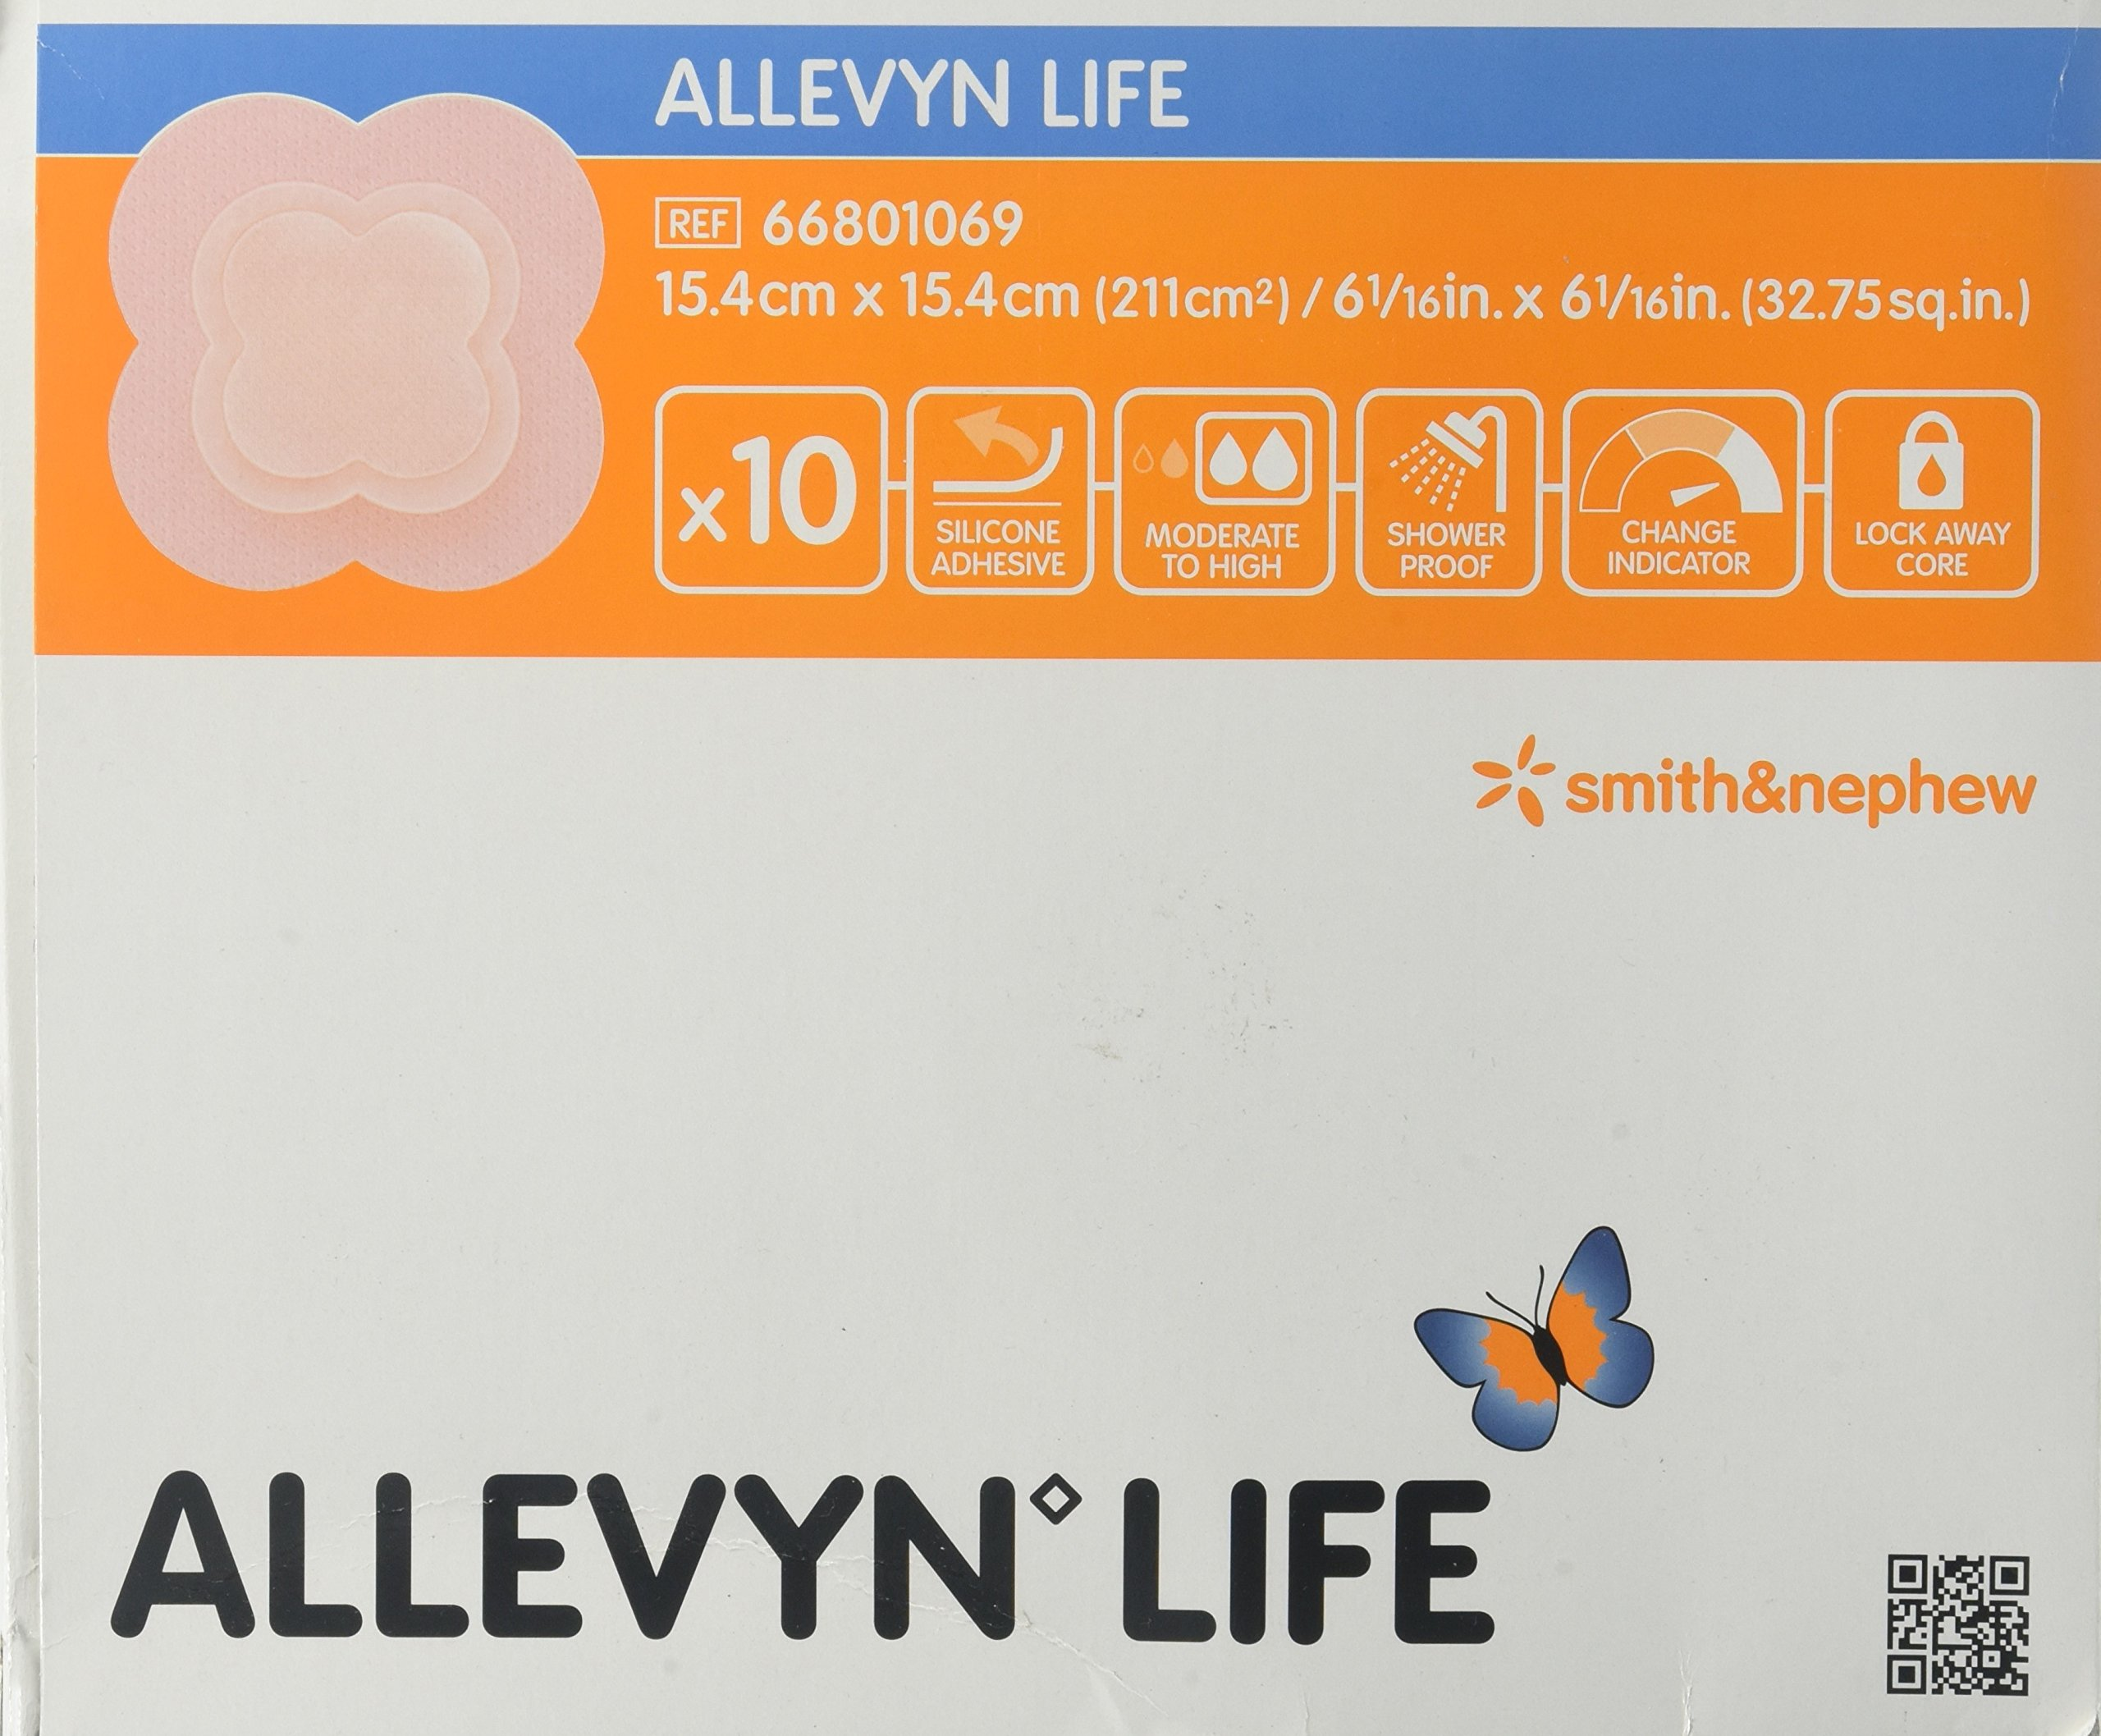 Smith & Nephew Foam Dressing Allevyn Life 6.06 X 6.06'' Quadrilobe Sterile (#66801069, Sold Per Box) by Allevyn Life